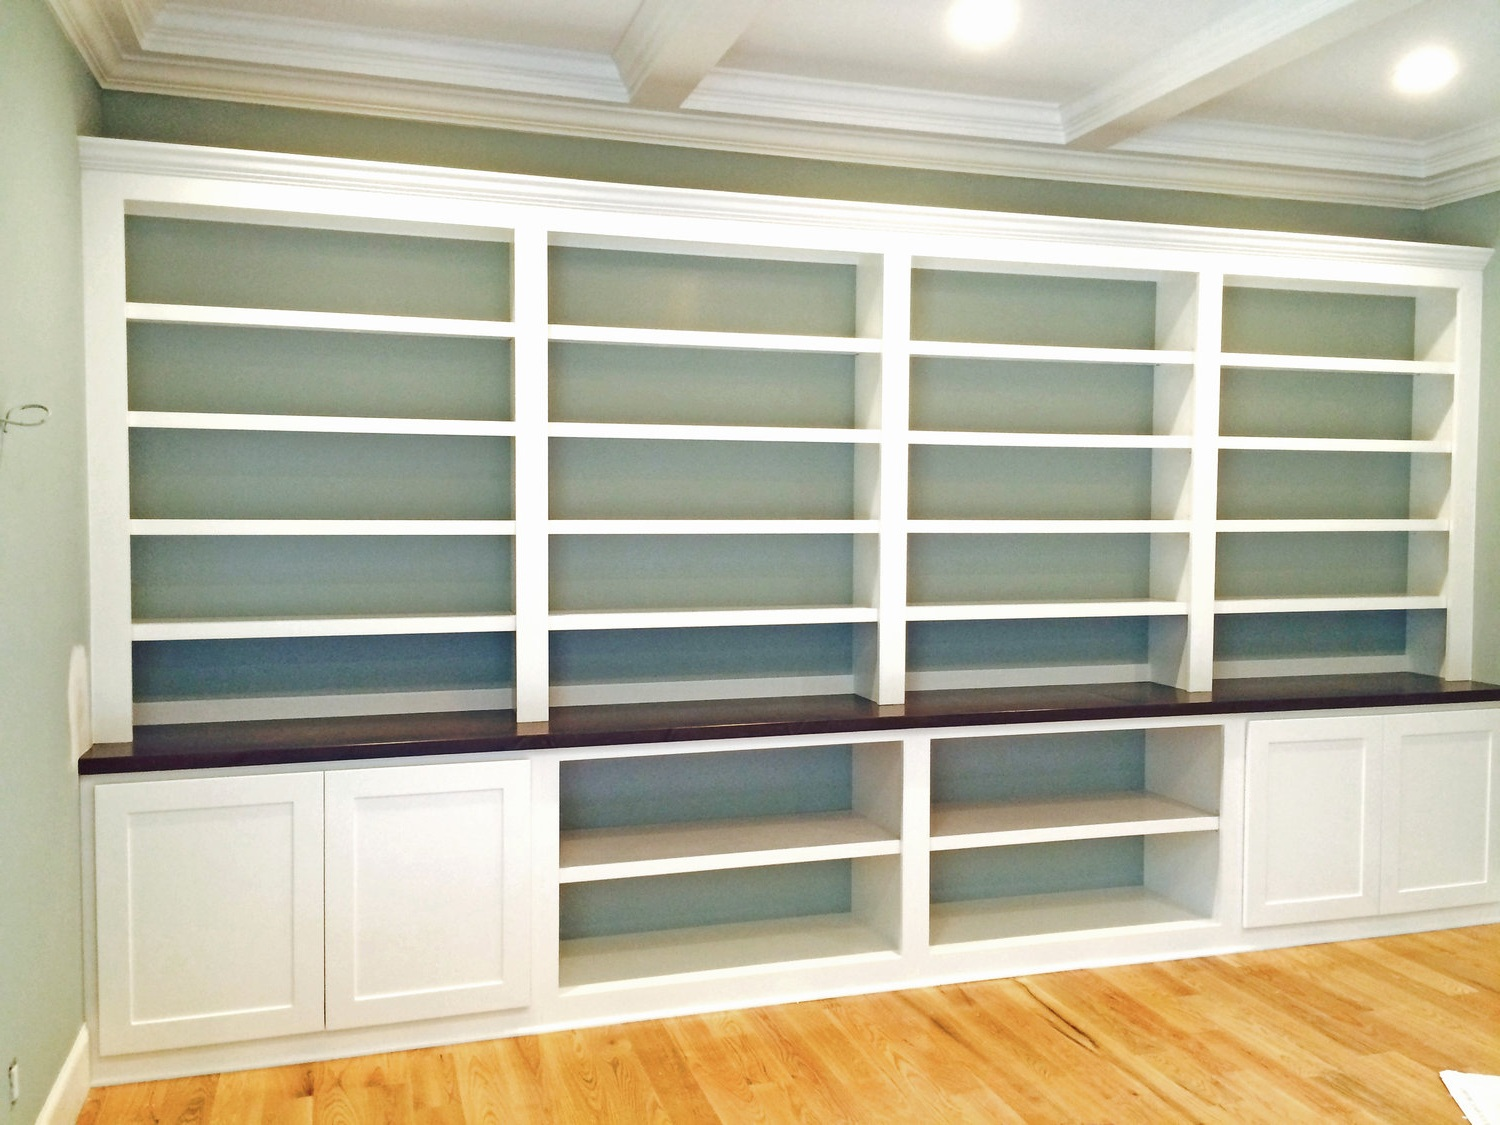 Built-In with Accent Backer Color, Adjustable Shelves, Shaker Doors, and Open Cubbies